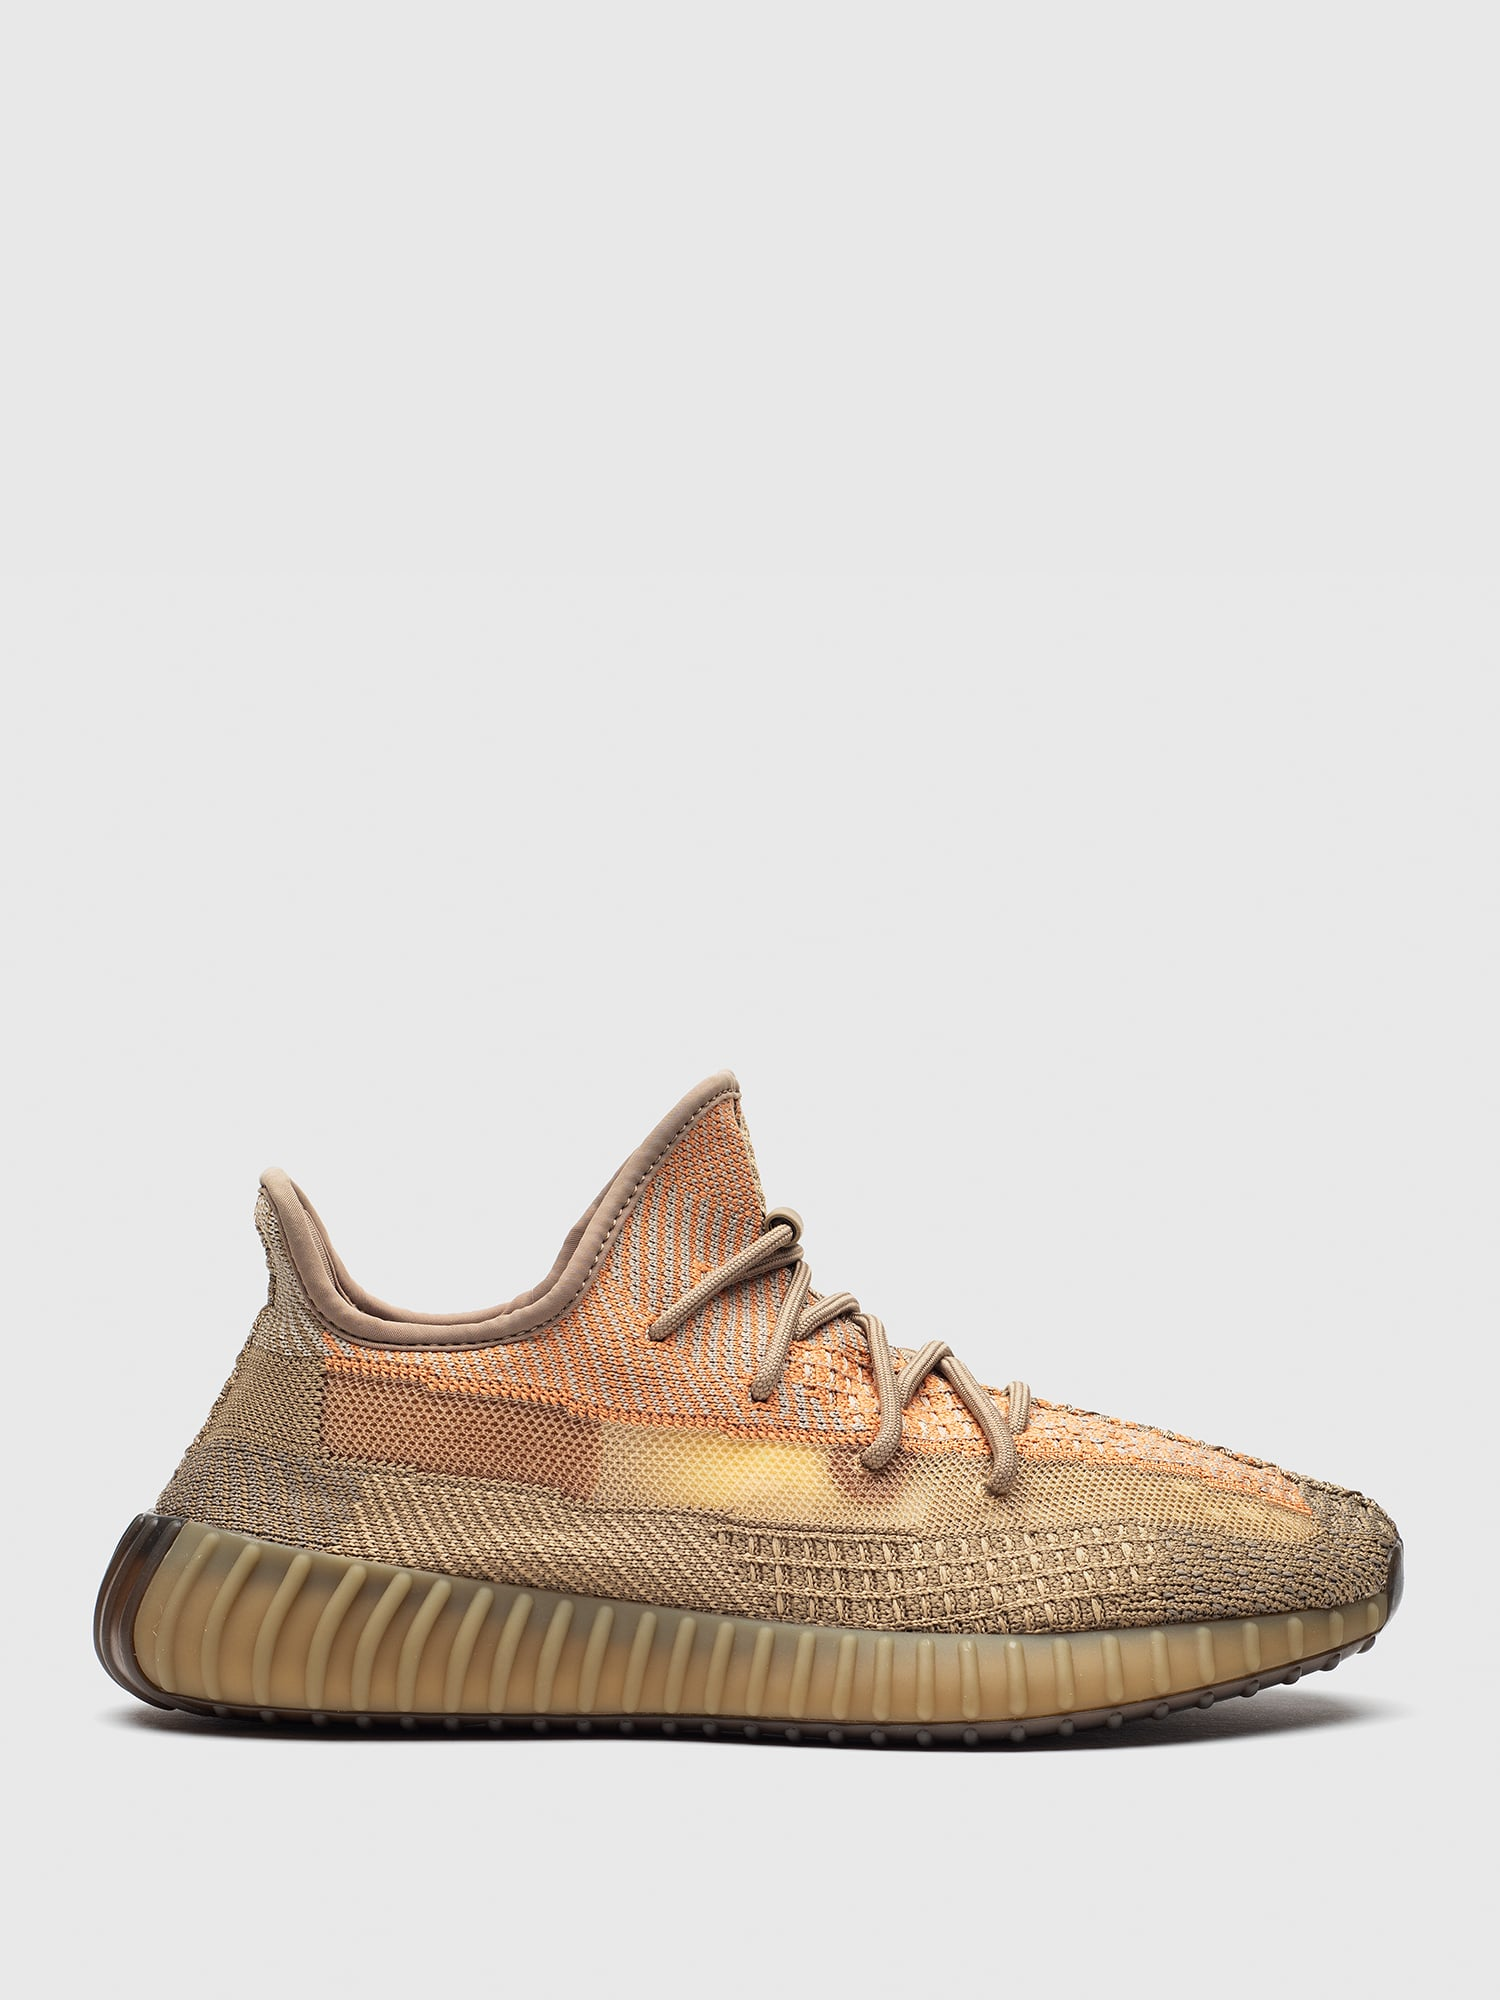 """Adidas Yeezy Boost 350 V2 """"Sand Taupe"""""""